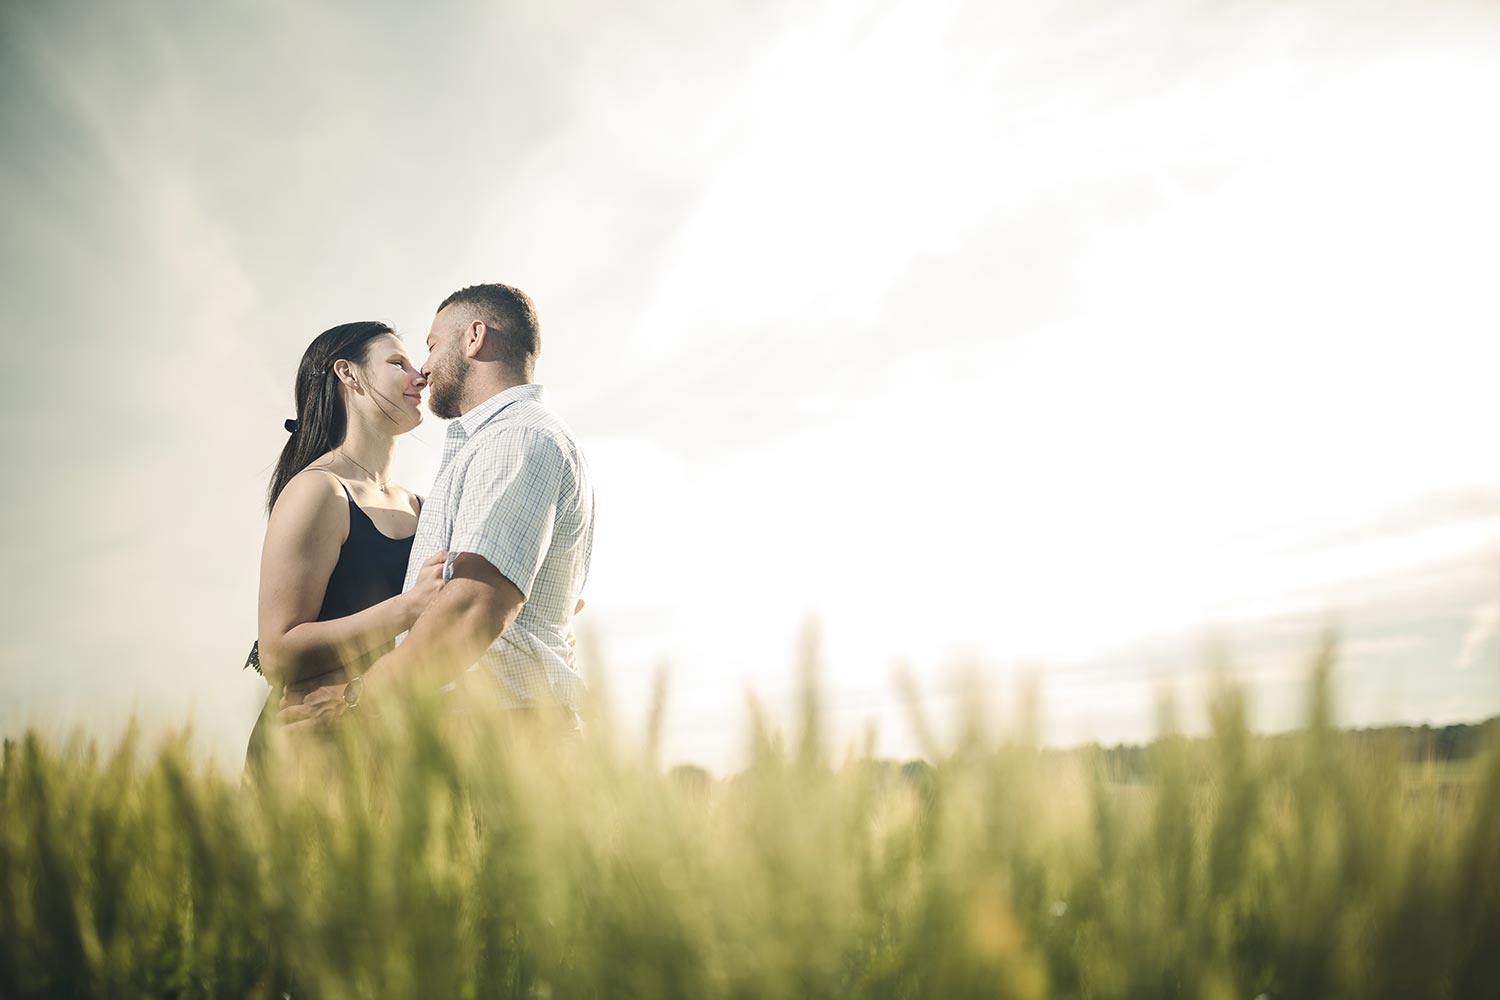 Harvest View Barn Engagement Session  with couple nose kissing in wheat field with bright sunset behind them